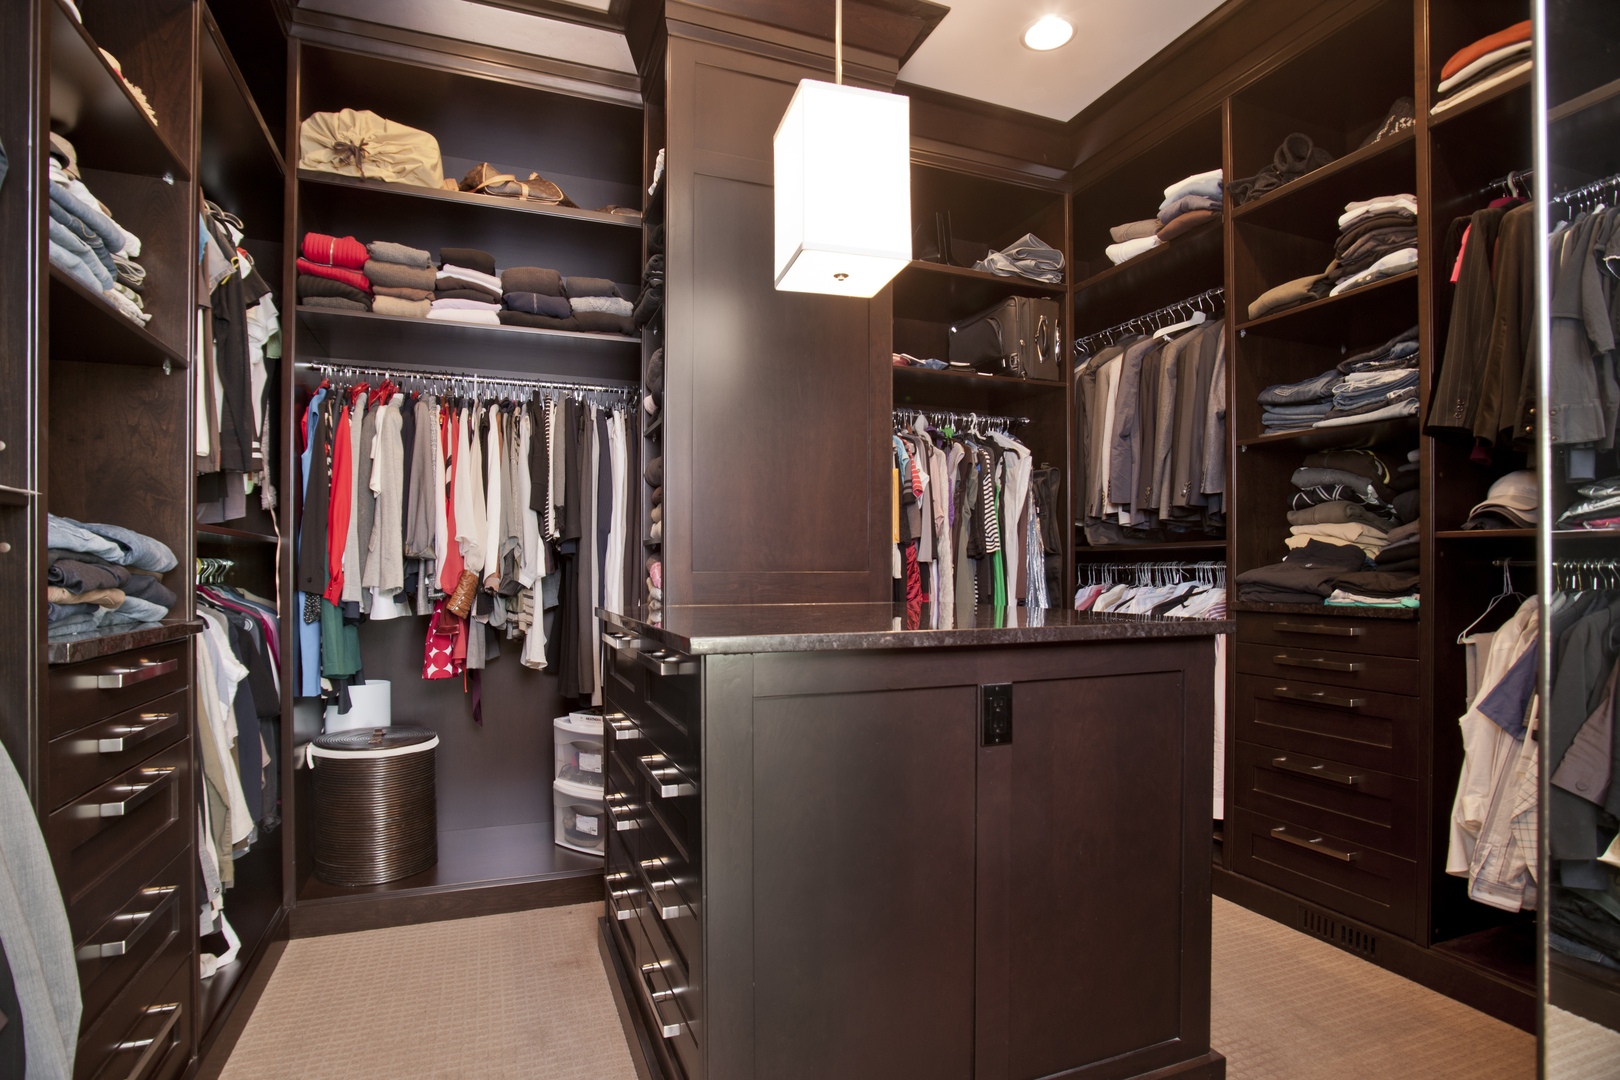 Master Bedroom Closet luxury master bedroom closet | scott arthur millwork & cabinetry